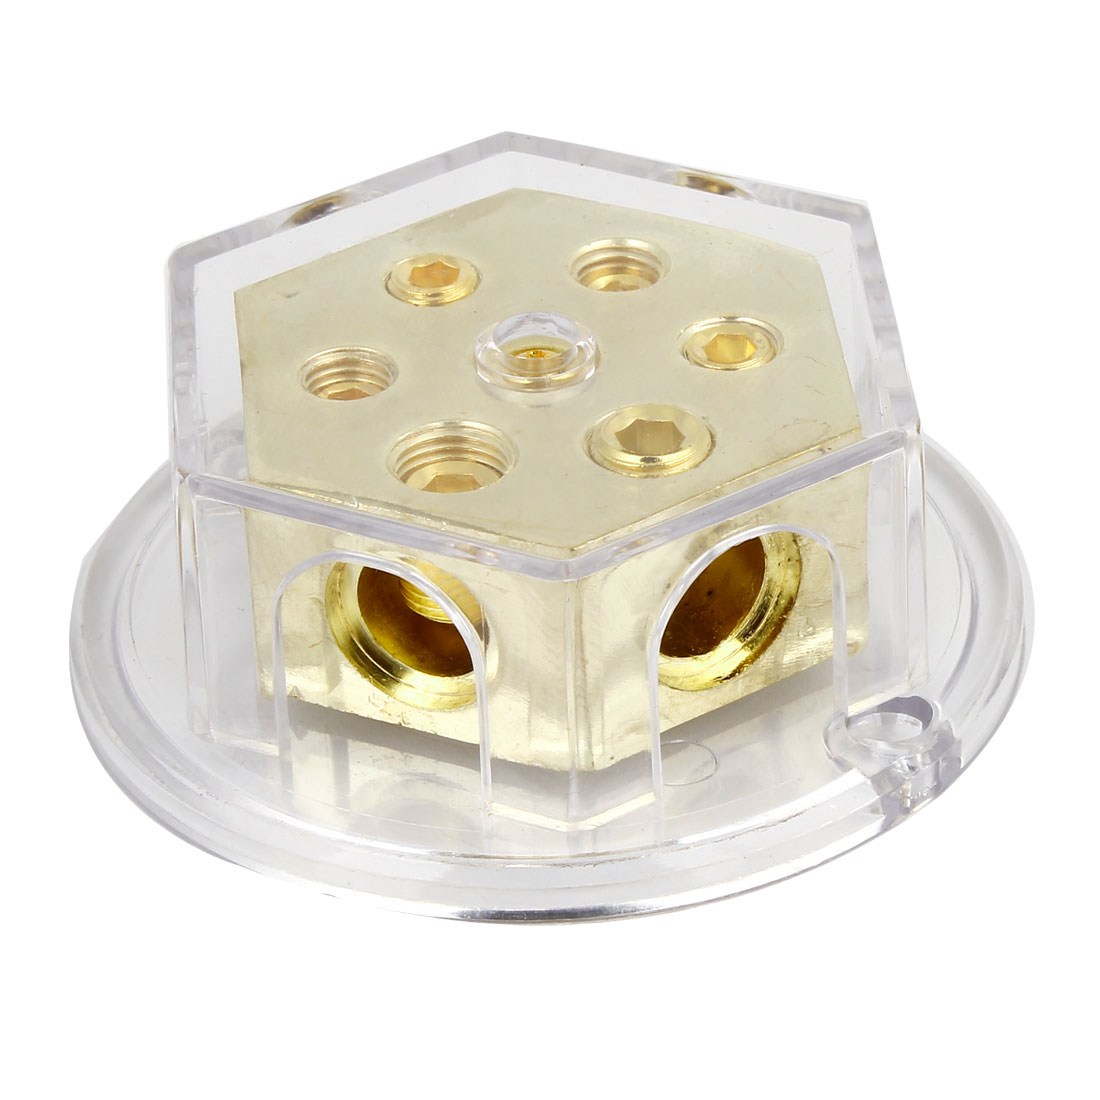 Gold Tone Clear Shell Auto Audio Amplifier 1 in 5 Power Distributor Block Fuse Holder